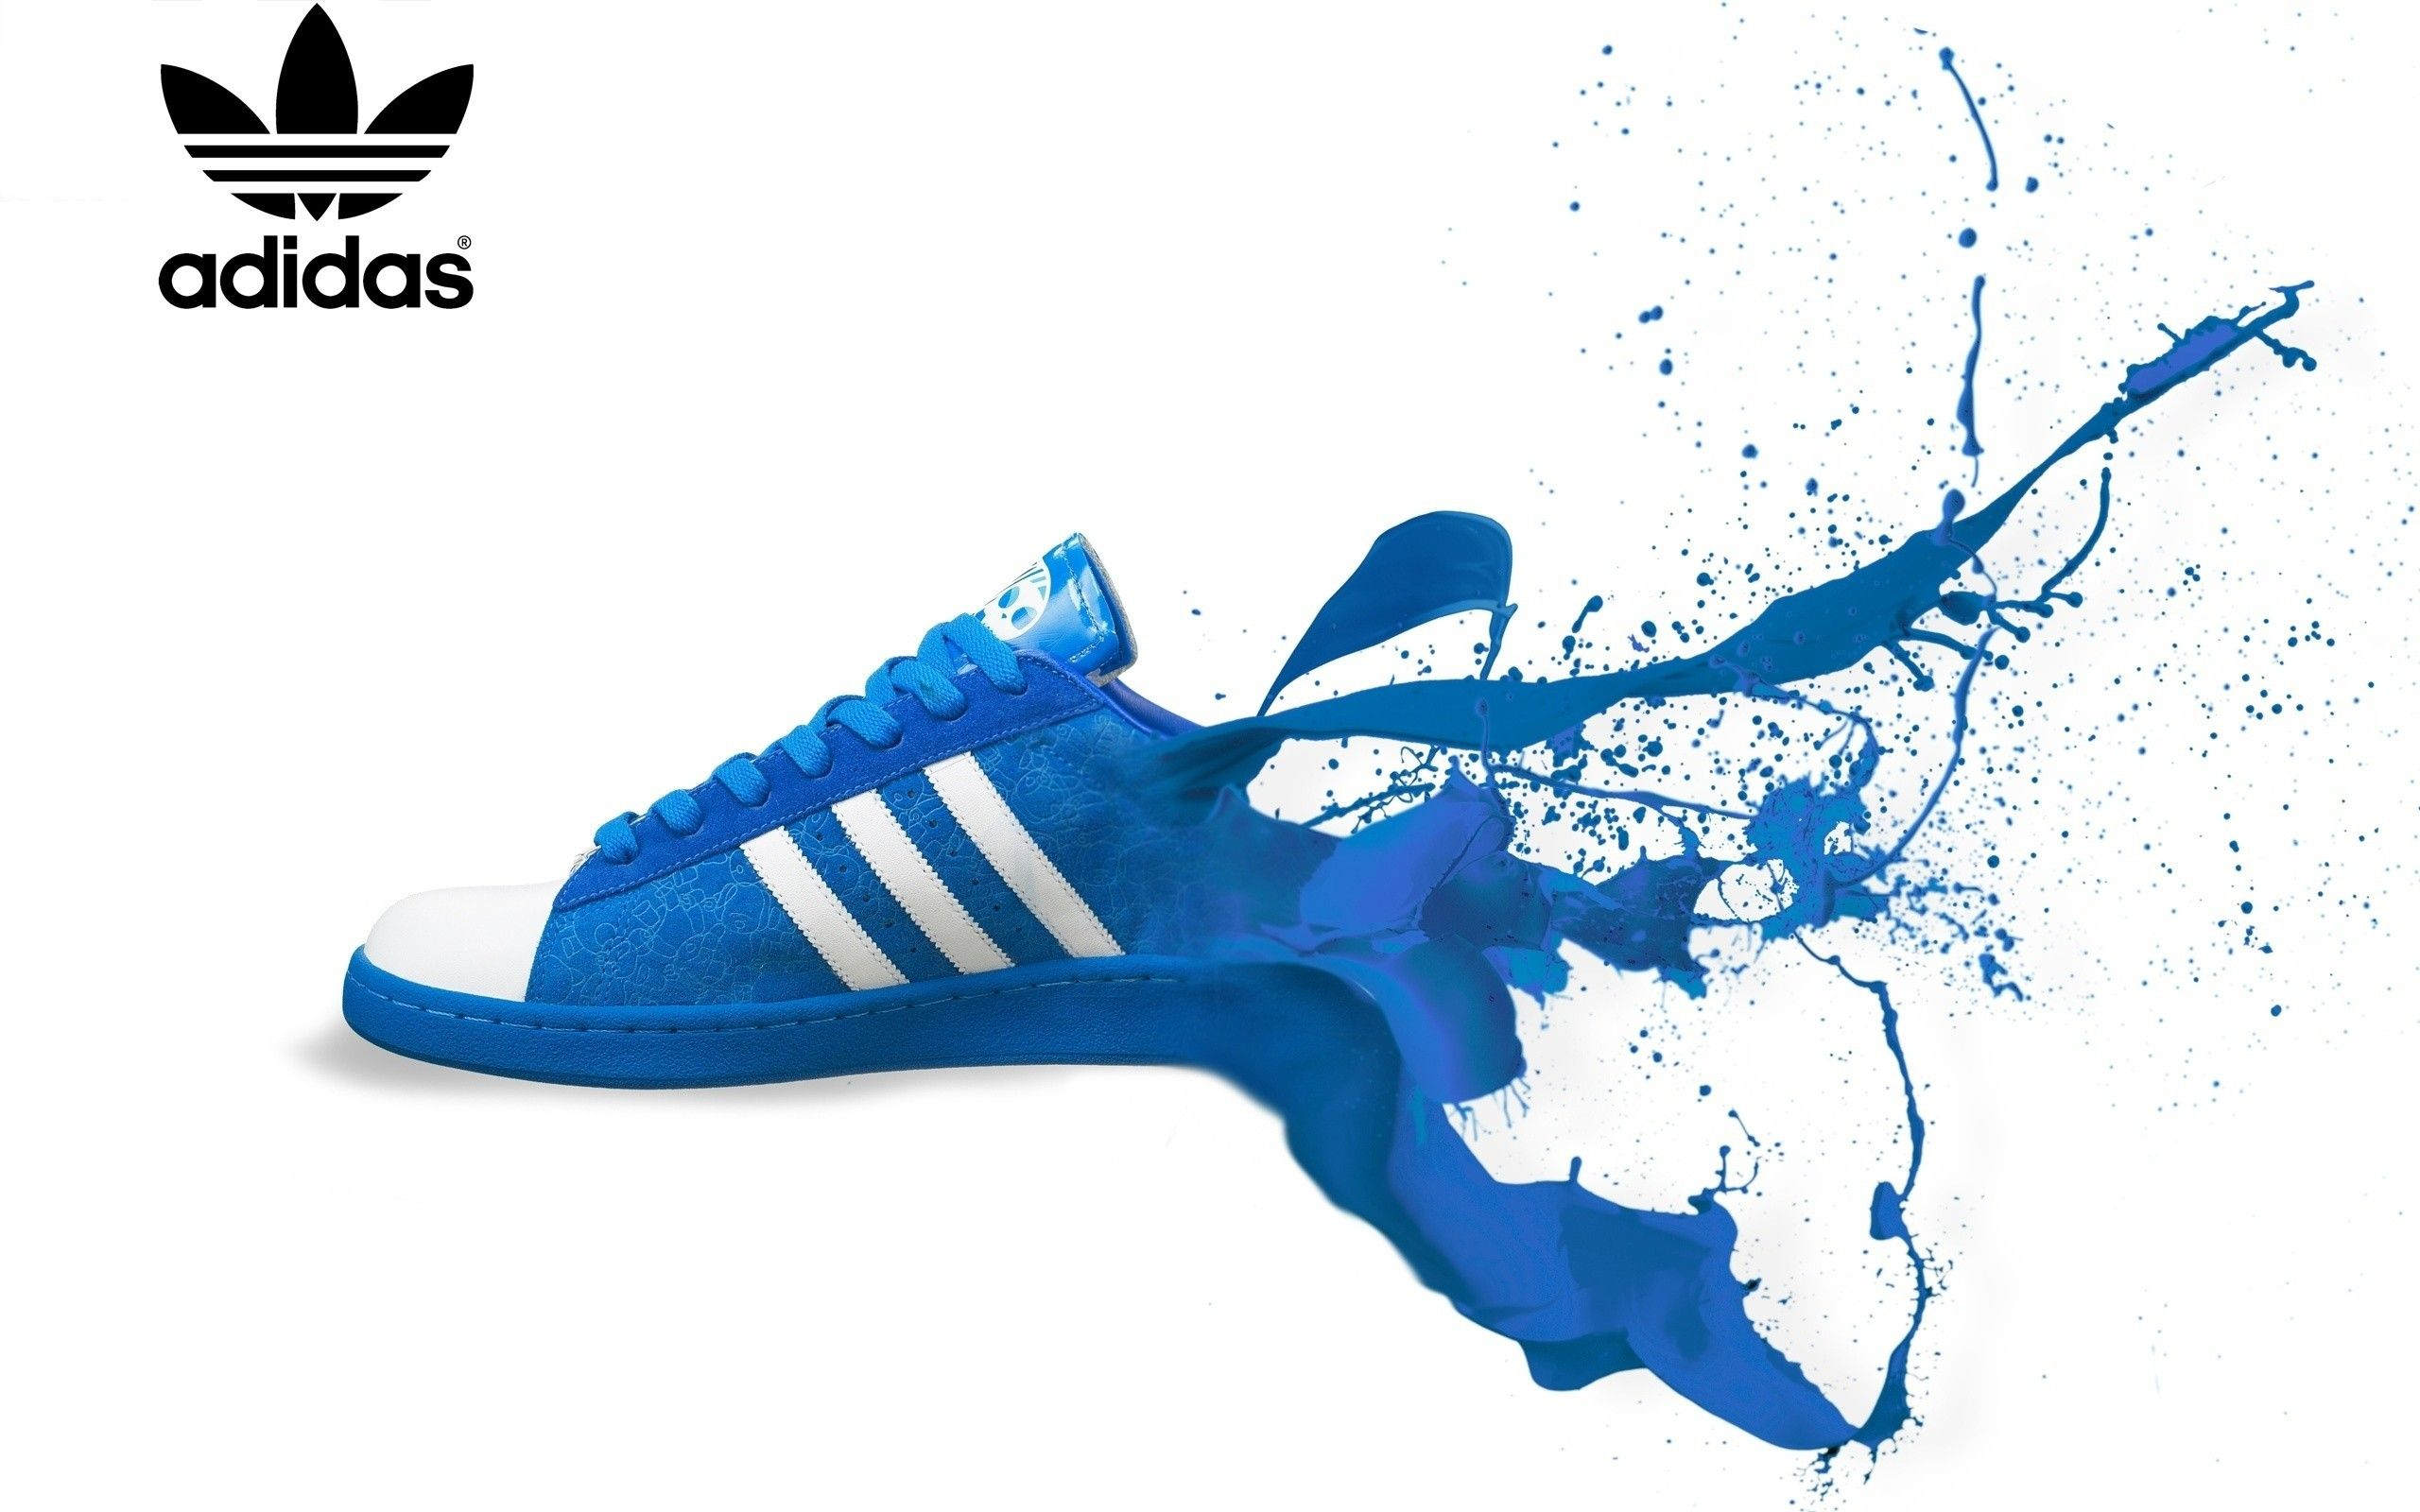 Adidas Logo Splash Shoes Wallpaper Your Top HD Wallpapers (shared via  SlingPic)